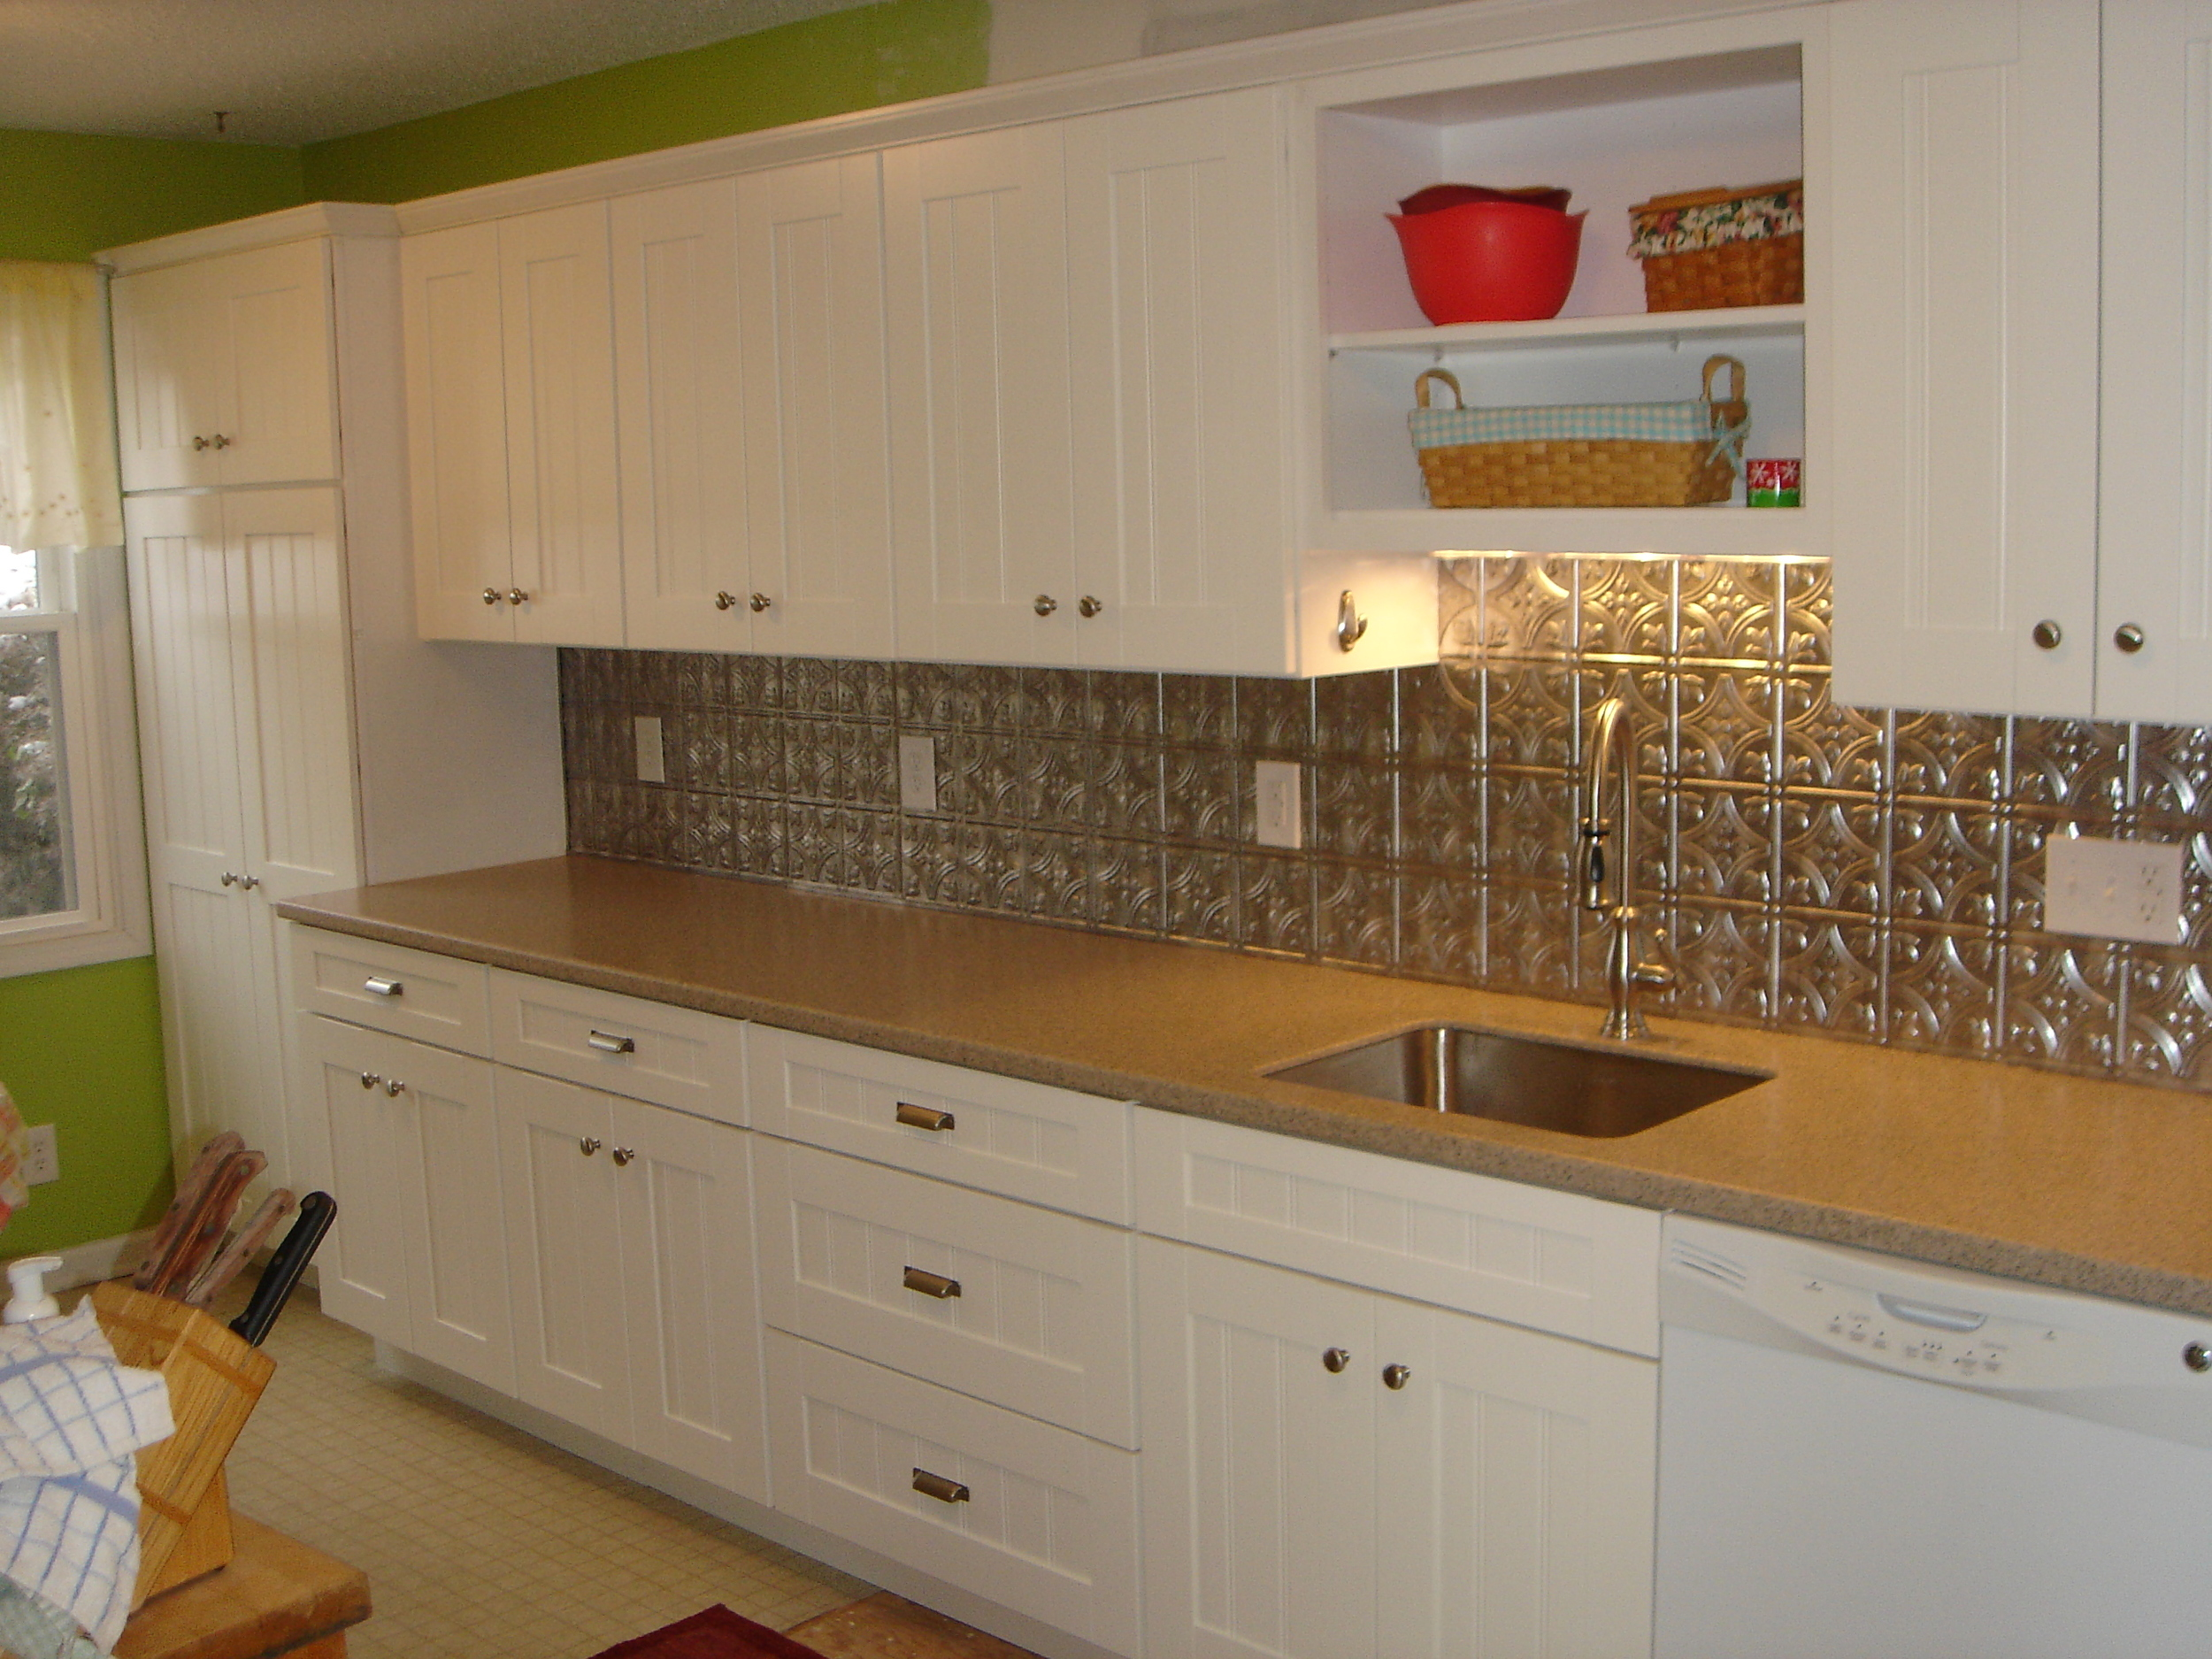 modern-white-kitchen-cabinet-remodeling-ideas-with-beaded-shaker-frame-door-using-stainless-steel-knobs-and-stainless-steel-rectangular-undermount-sink-with-small-kitchen-remodeling-ideas-plus-wood-k.jpg